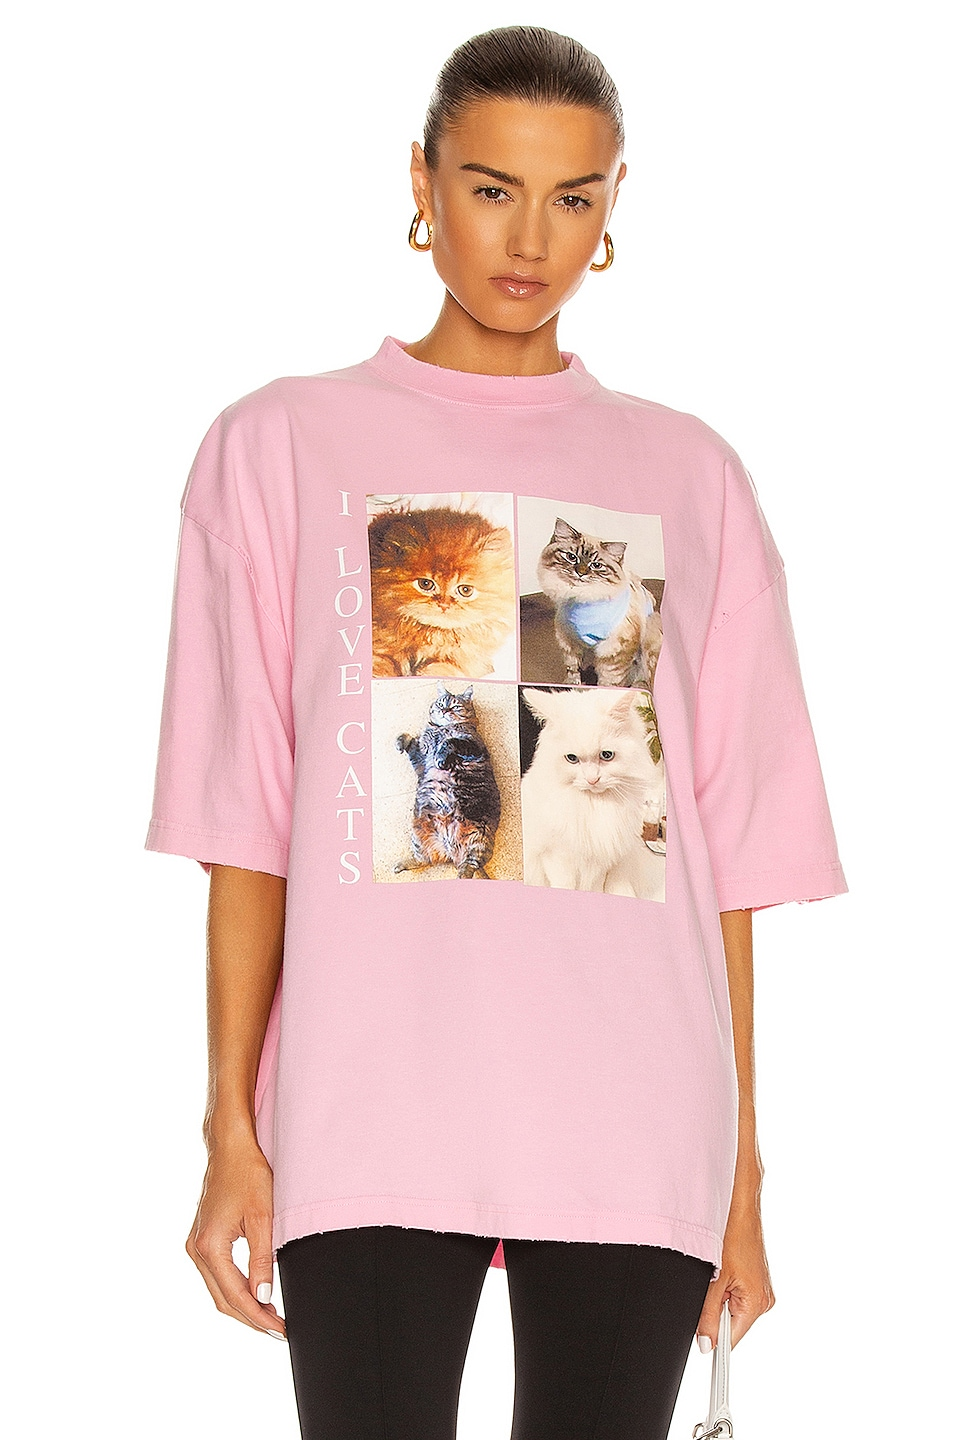 Image 1 of Balenciaga I Love Cats Vintage Jersey XL T Shirt in Pink